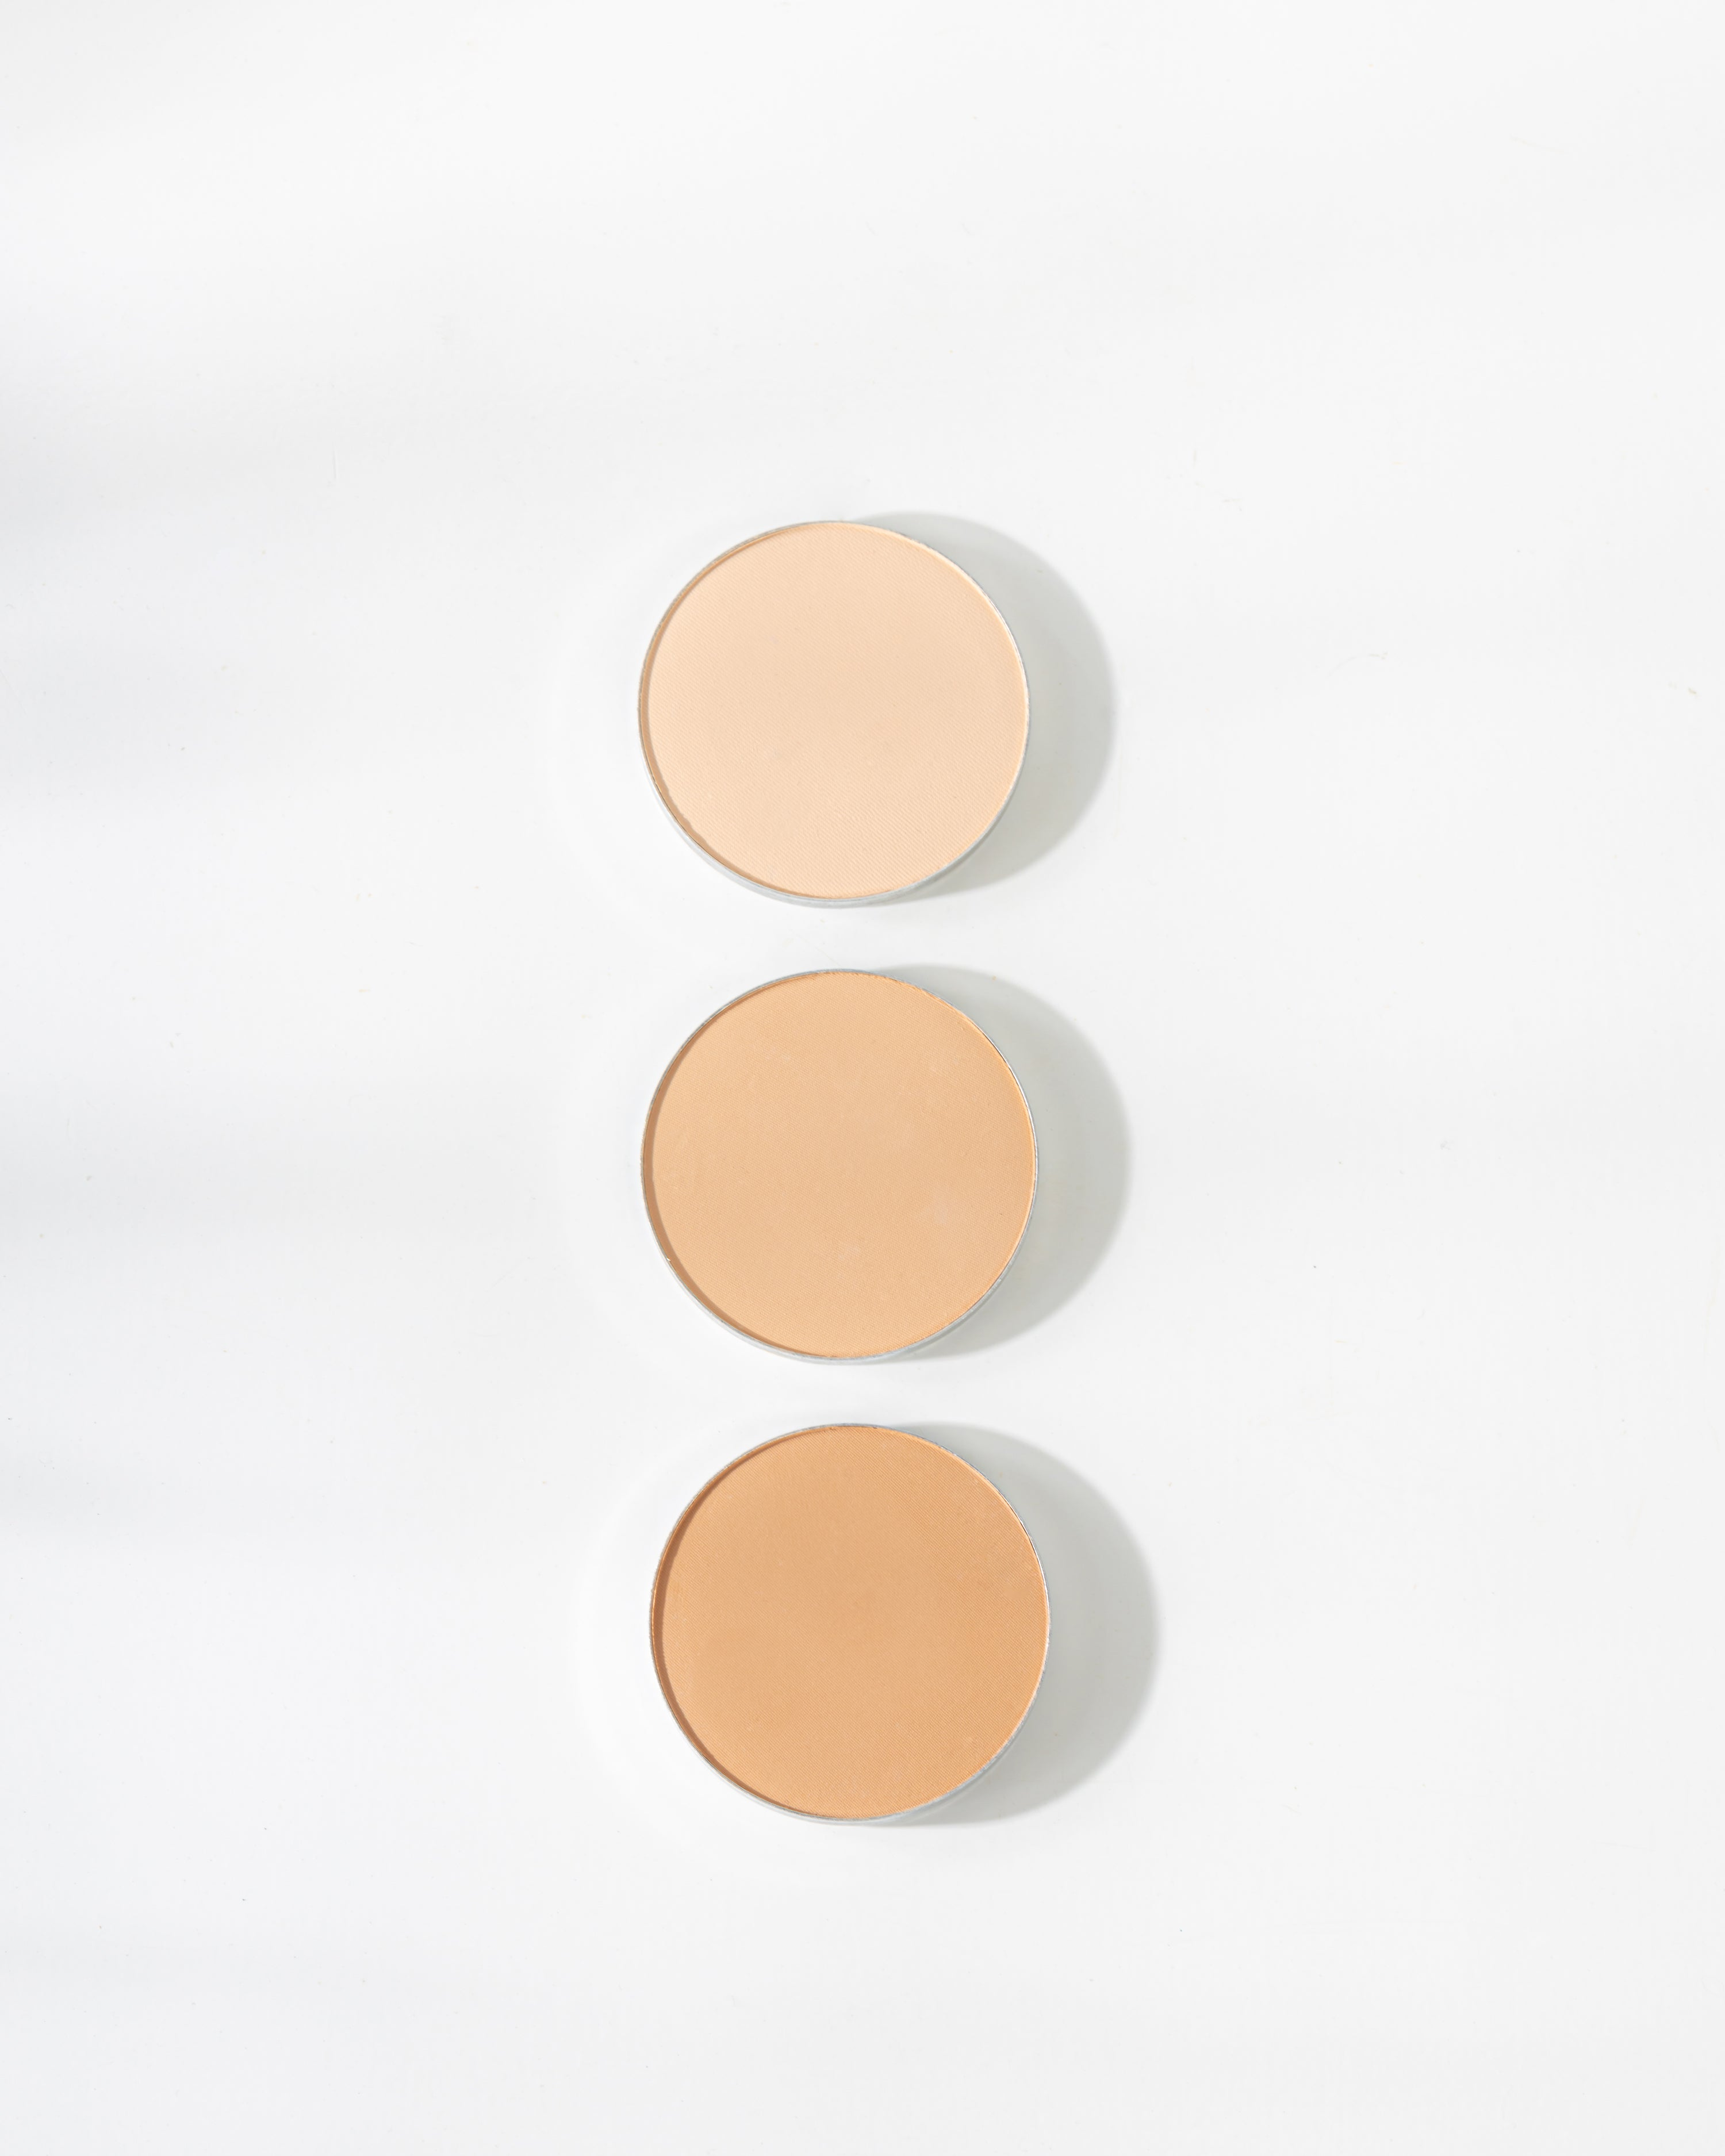 The Realest Lightweight Compact Powder in Tan